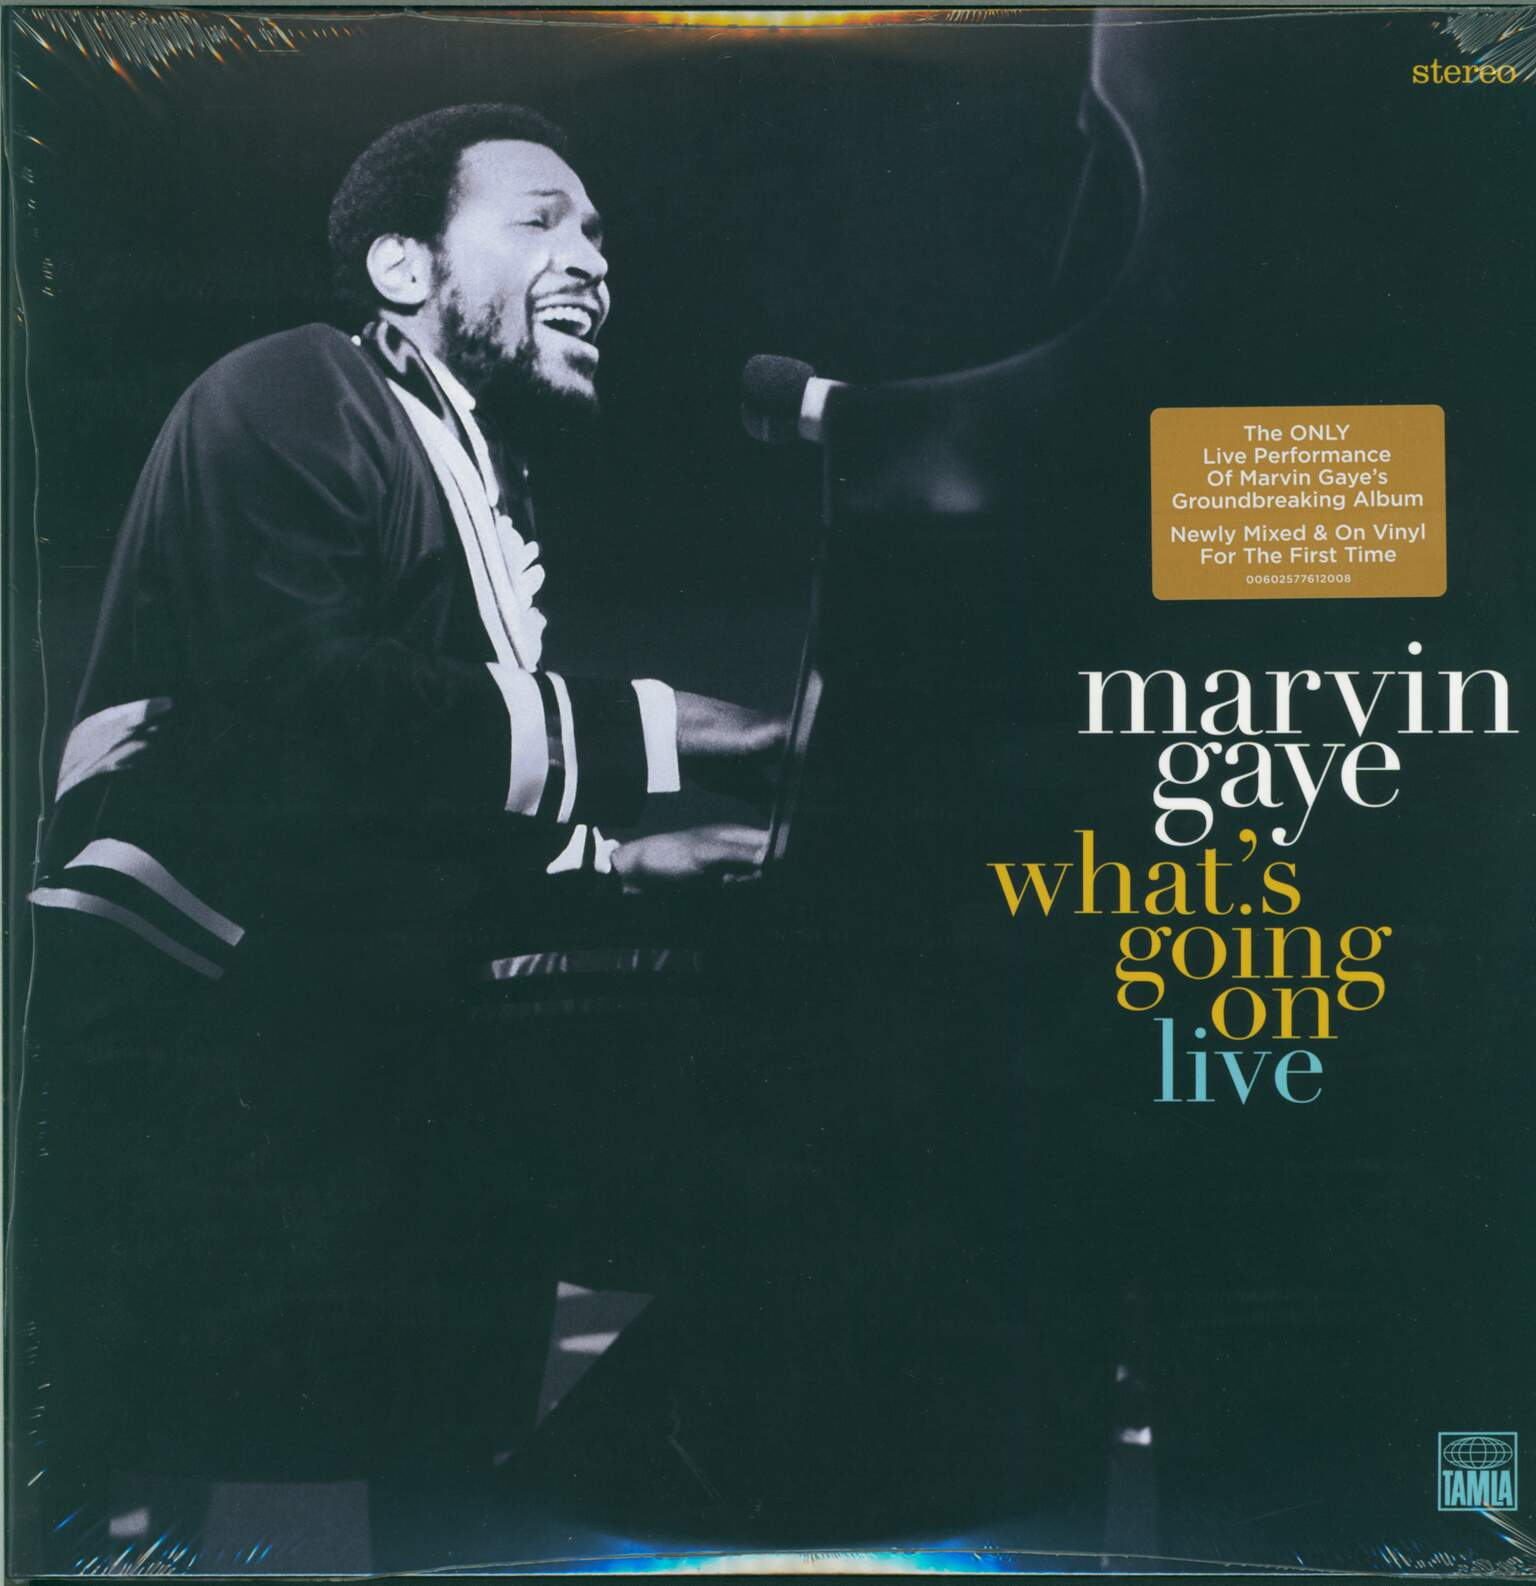 Marvin Gaye: What's Going On Live, 2×LP (Vinyl)